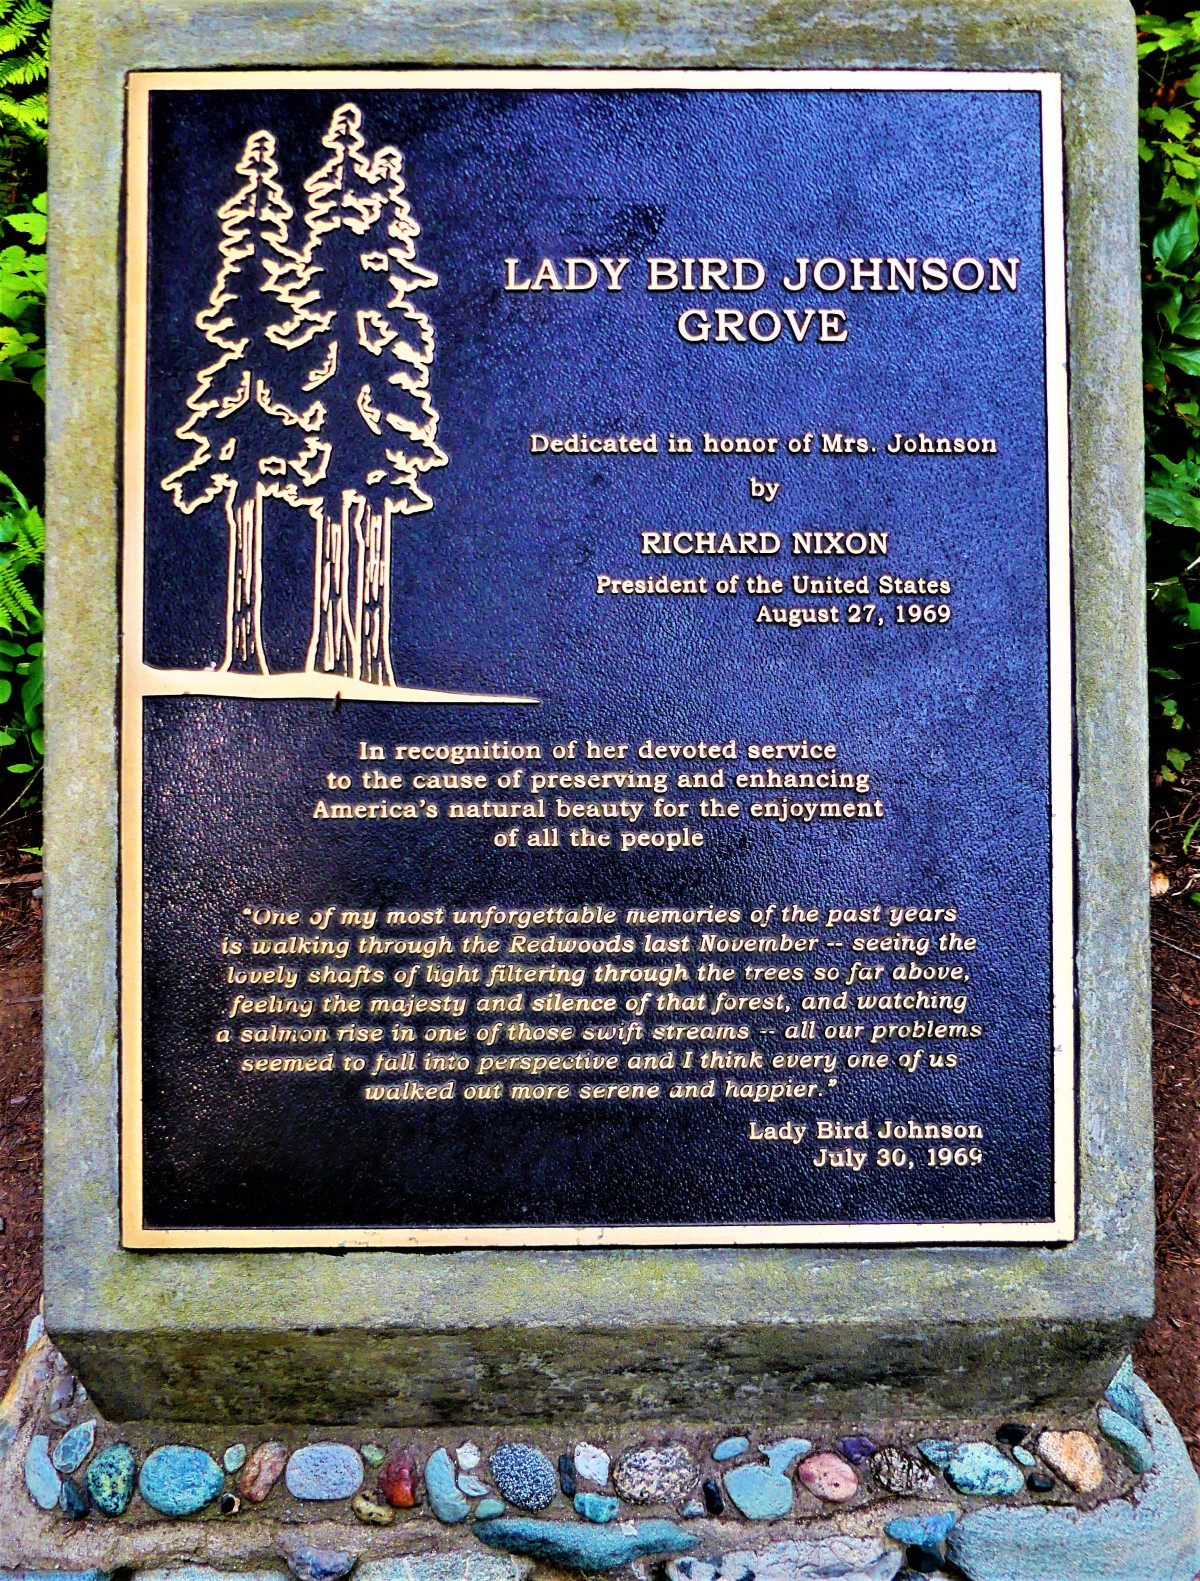 Lady Bird plaque